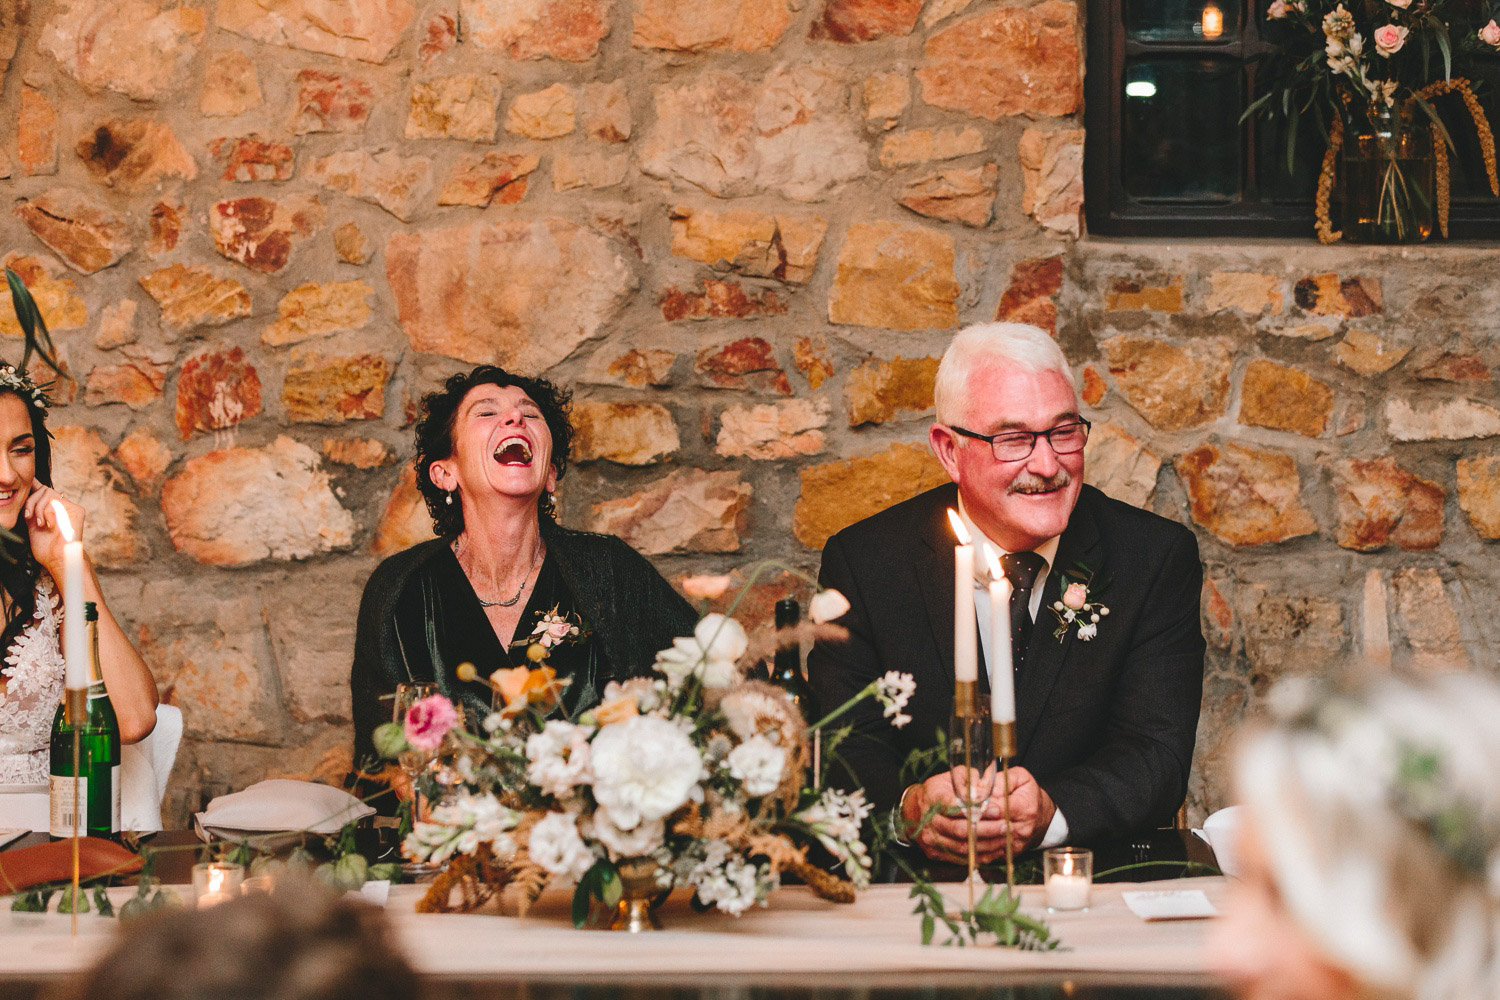 western-cape-photoghers-gen-scott-greyton-wedding-photography-charlie-ray135.jpg